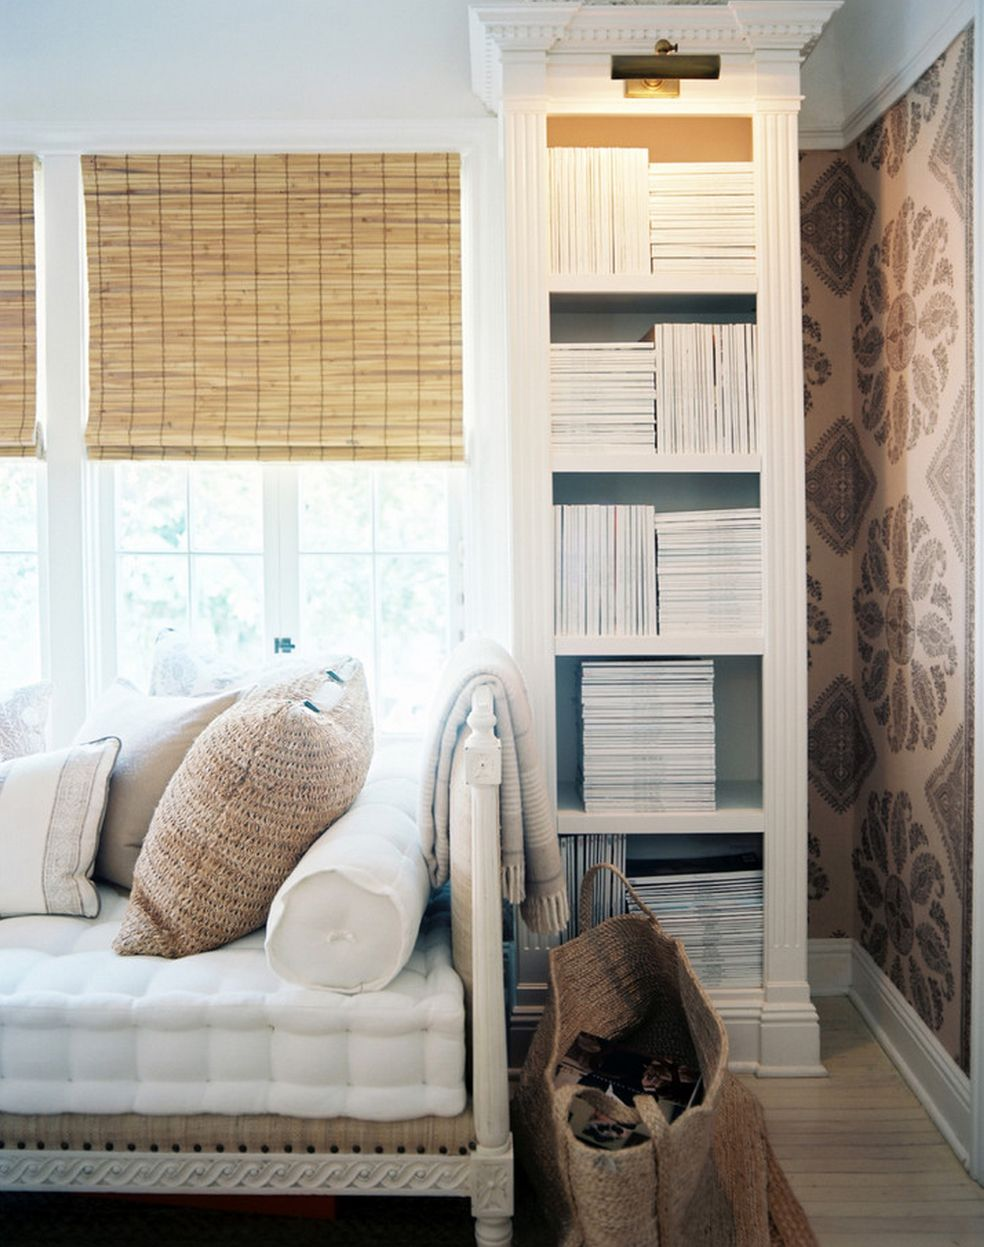 Neutral tones and natural textures make white cozy. #shabbychic ...